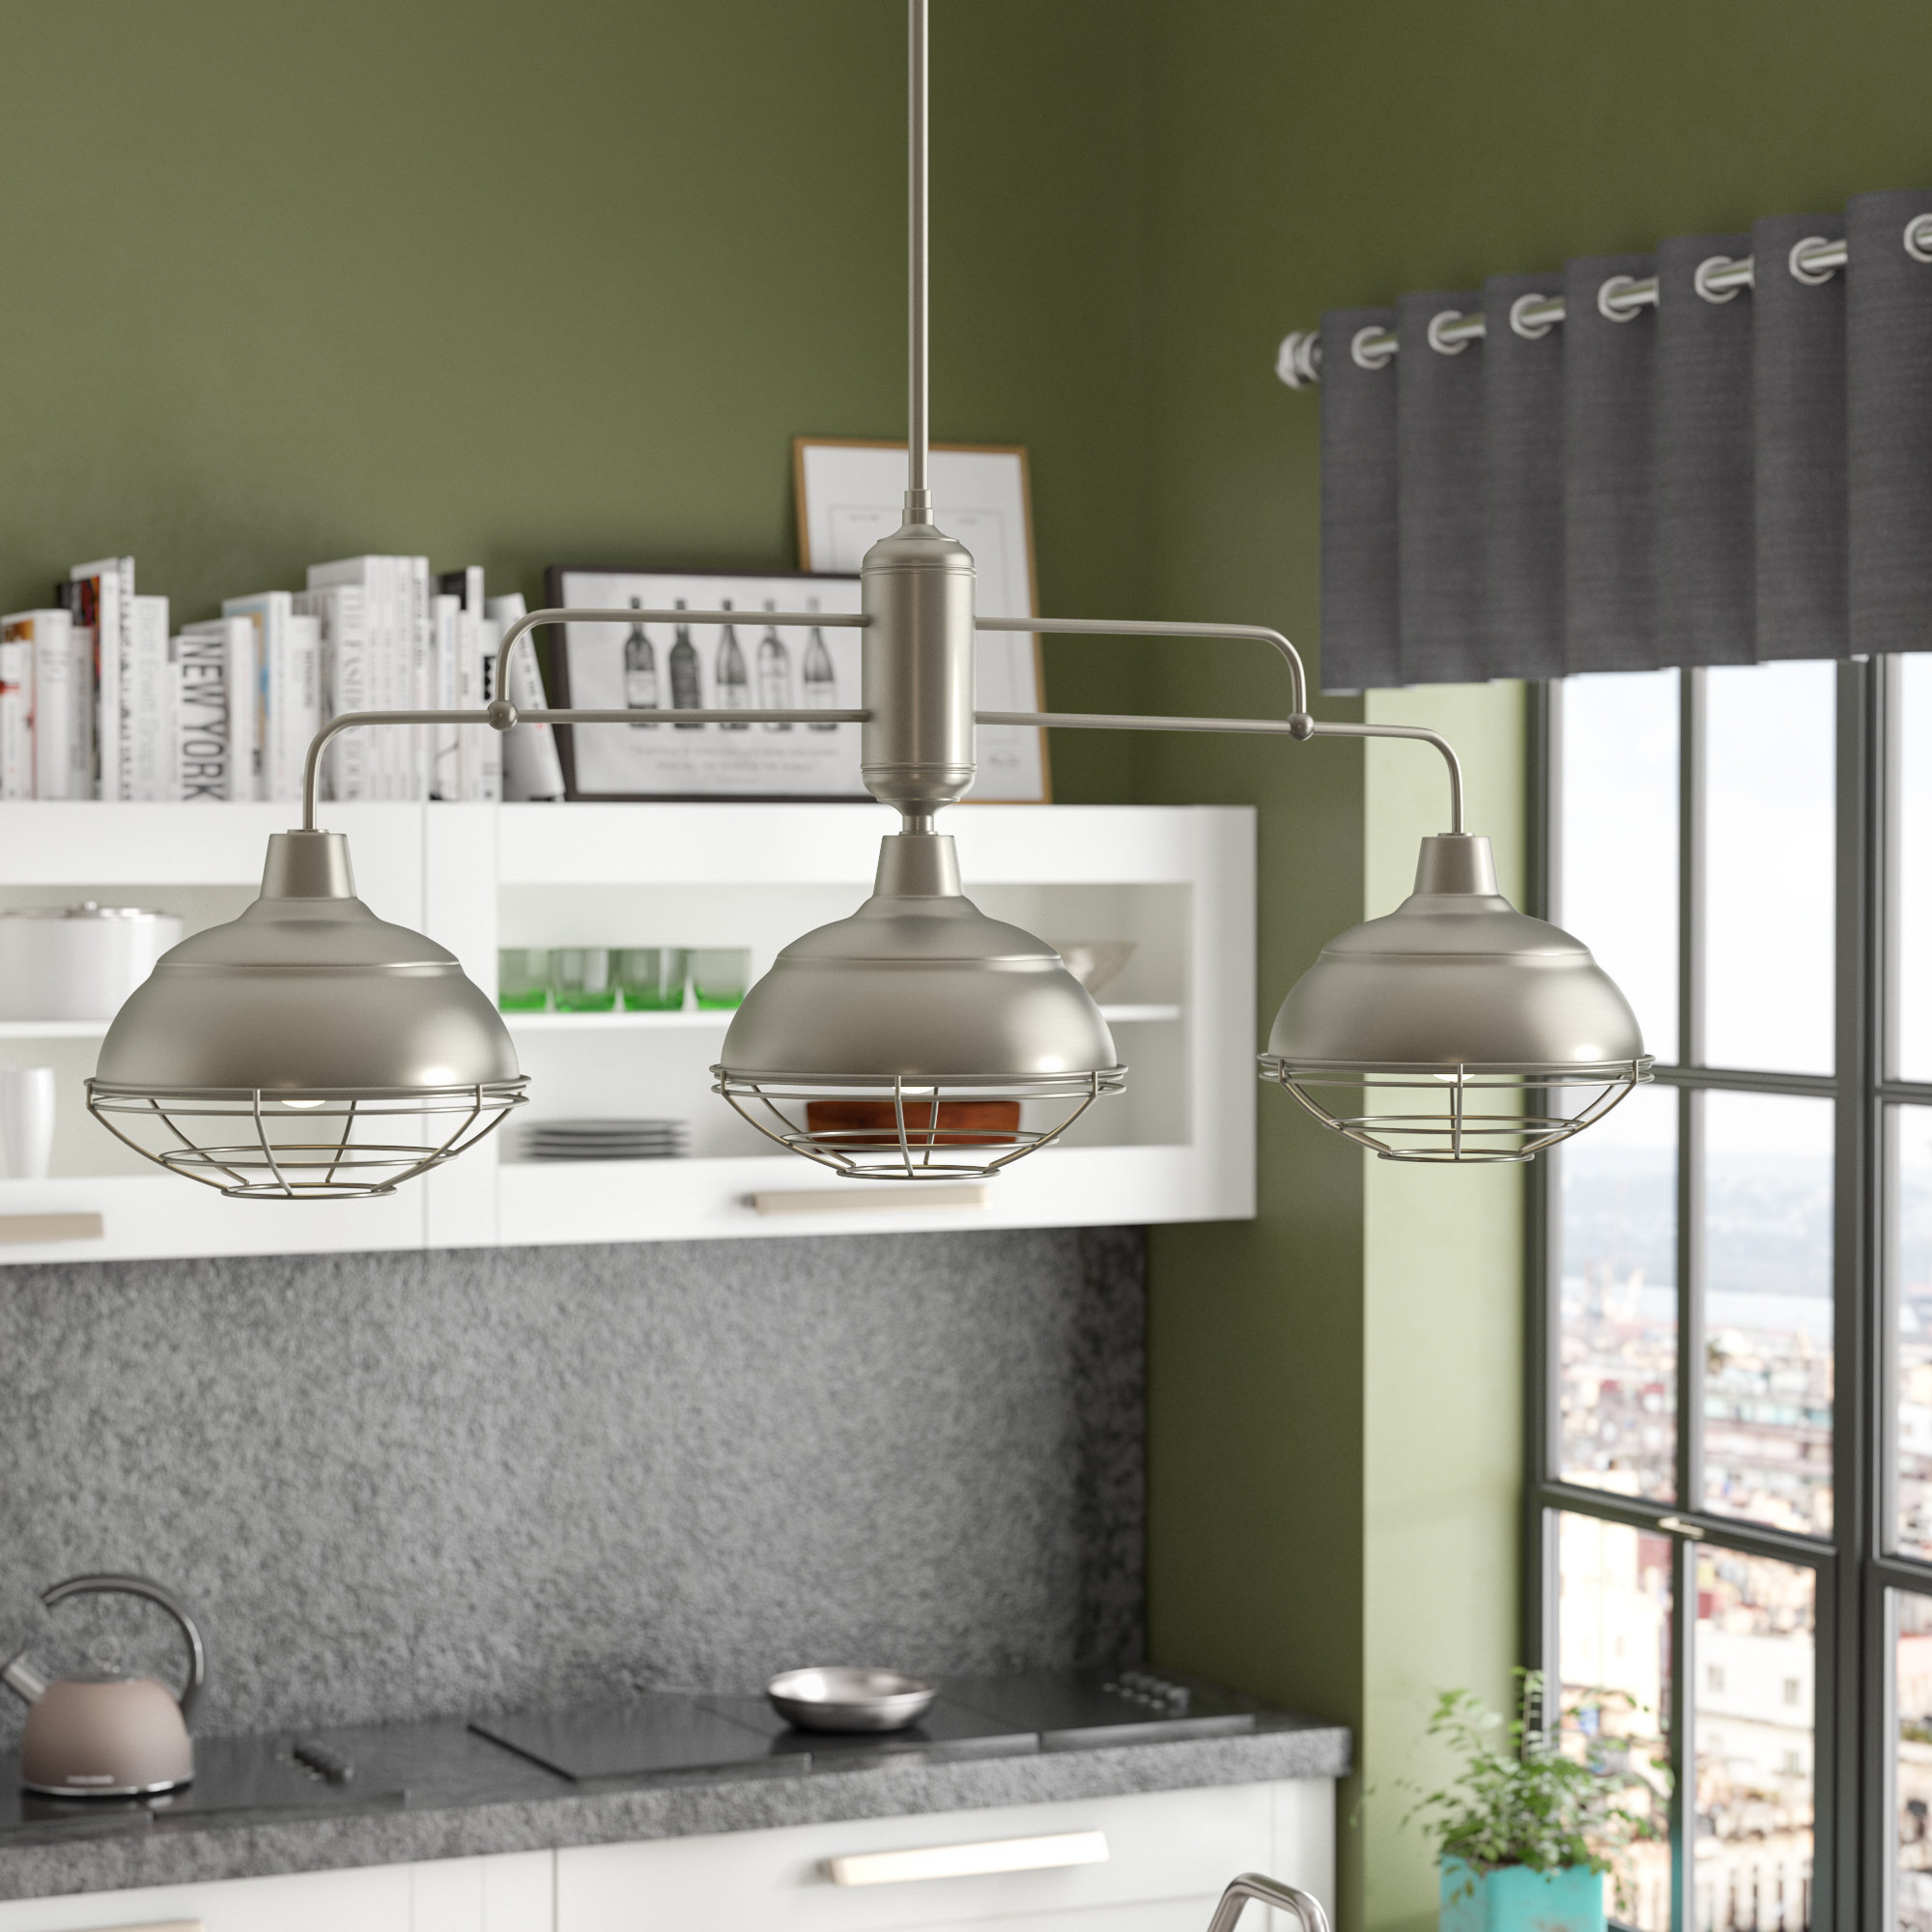 Dunson 3 Light Kitchen Island Pendant With Dunson 3 Light Kitchen Island Pendants (Gallery 1 of 30)